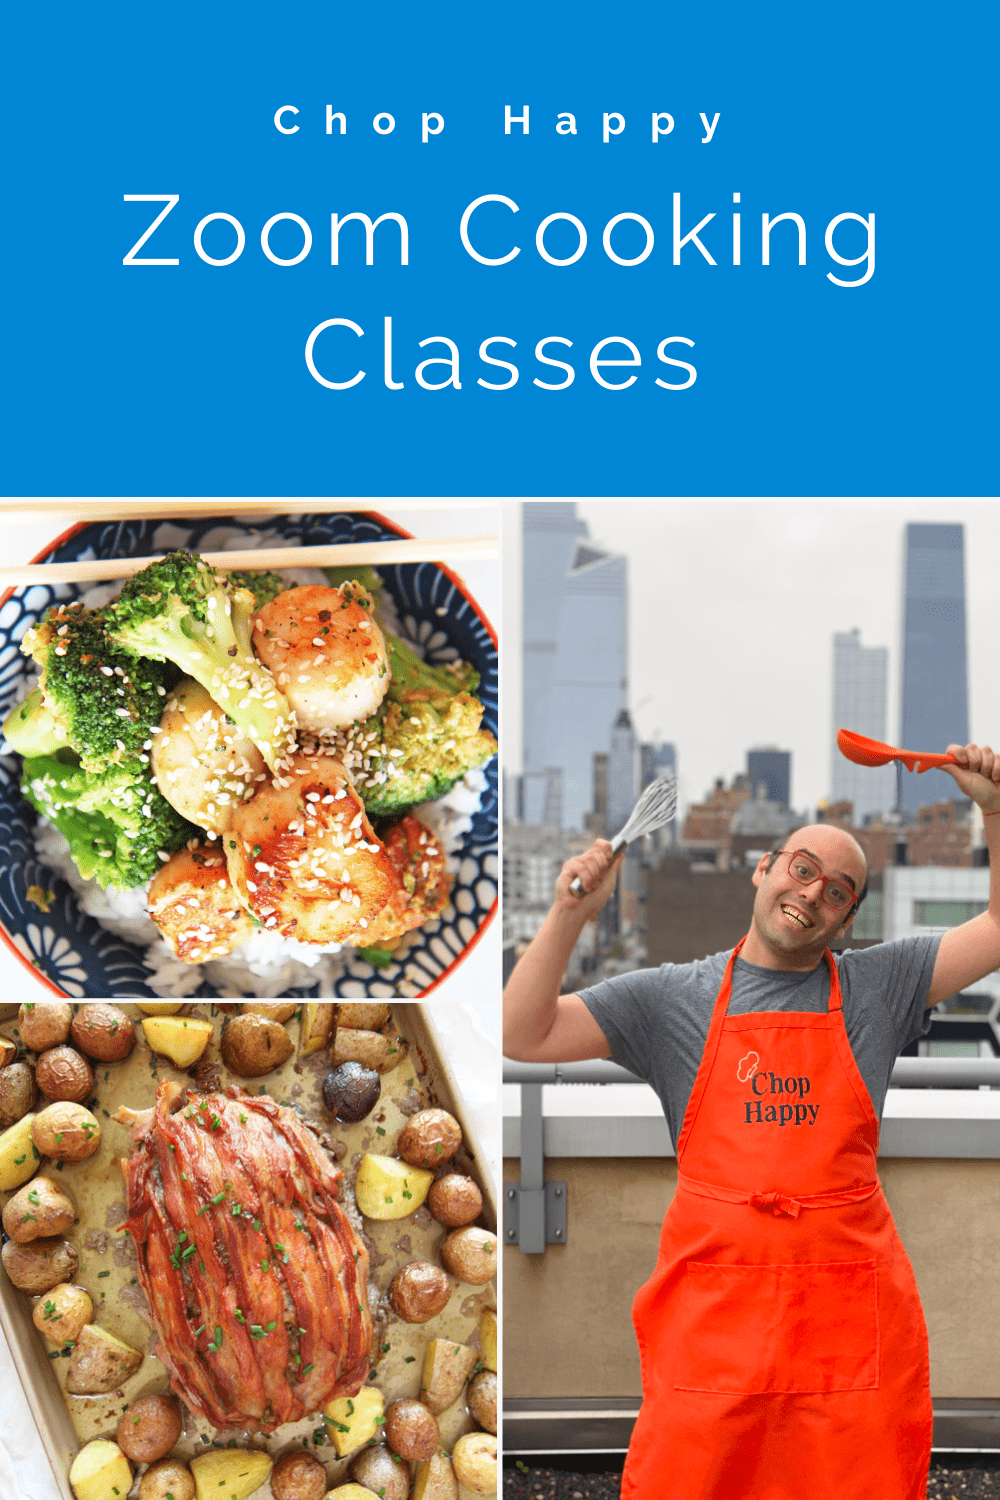 Zoom Cooking Class With Chop Happy #cookingclasses #zoomcookingclasses